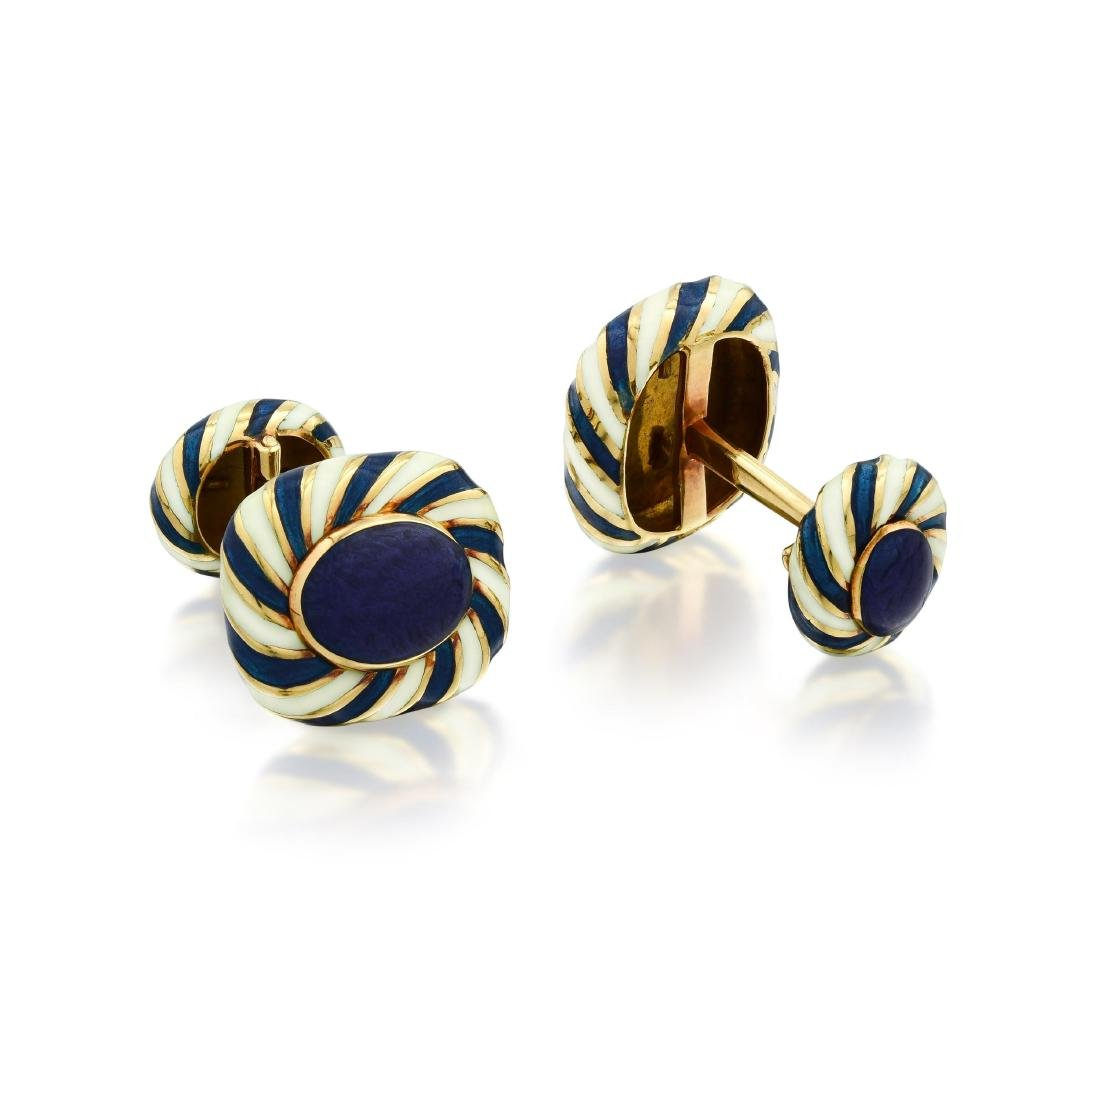 David Webb Enamel Cufflinks